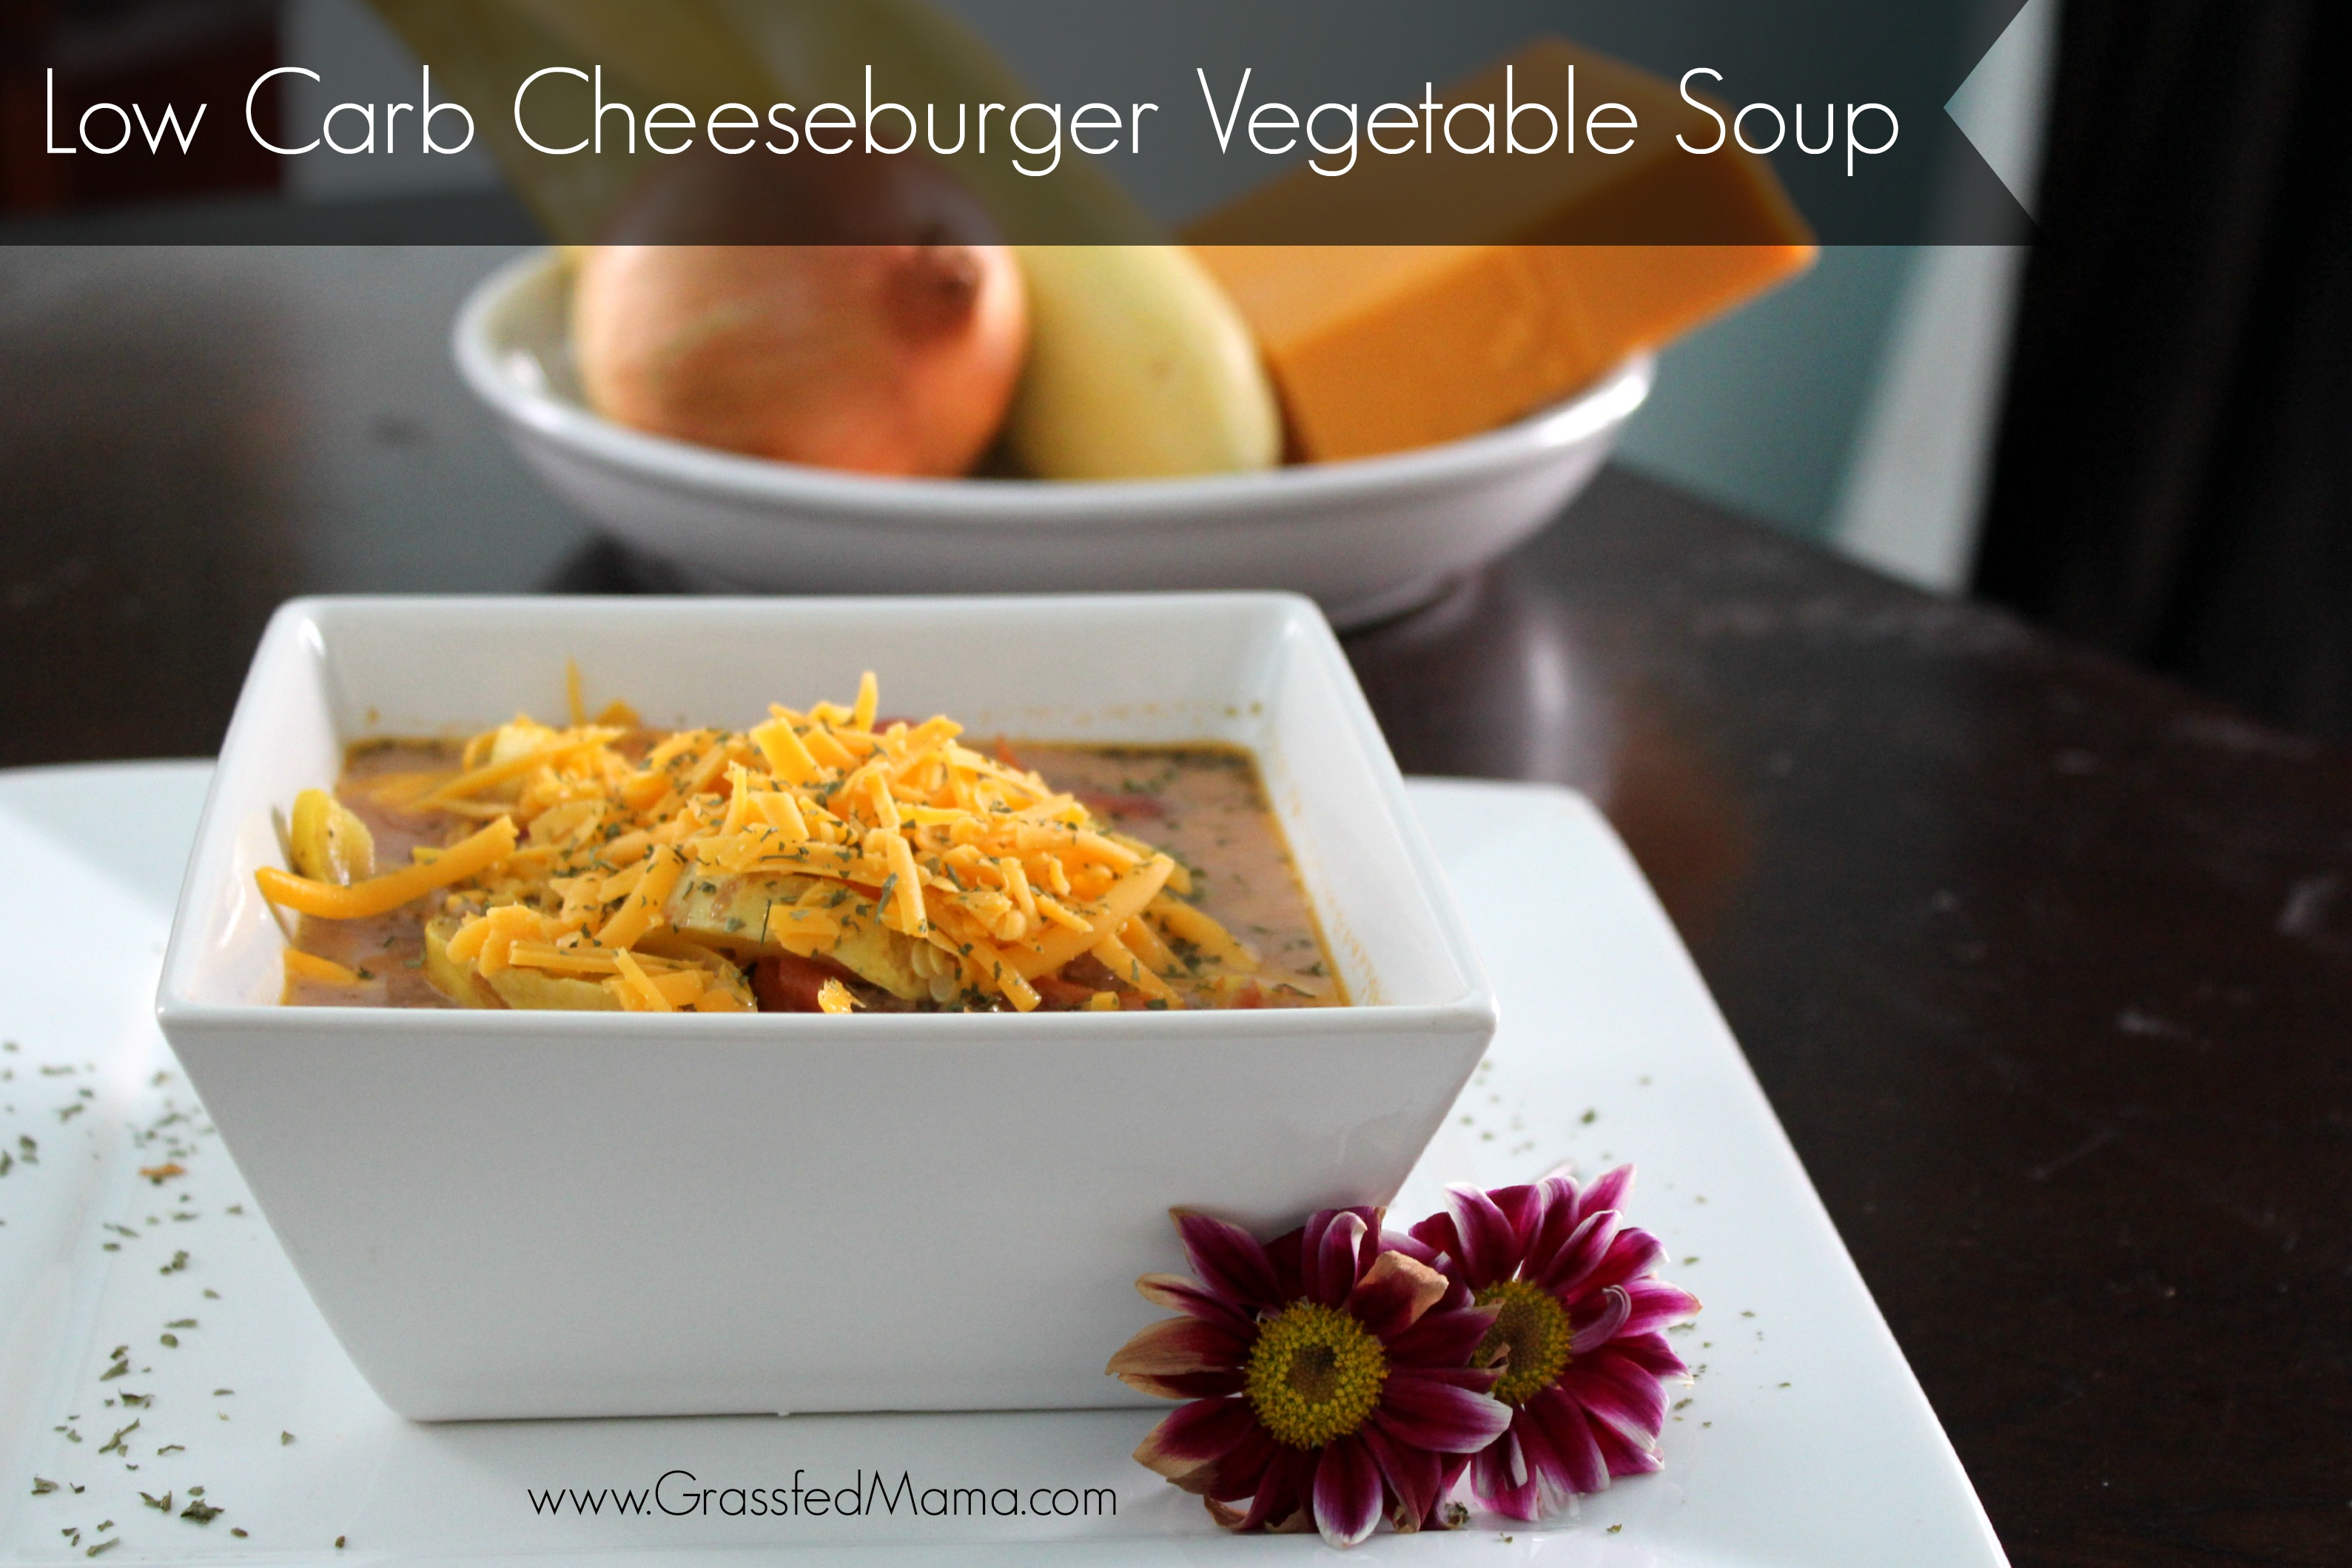 Low Carb Cheeseburger Vegetable Soup